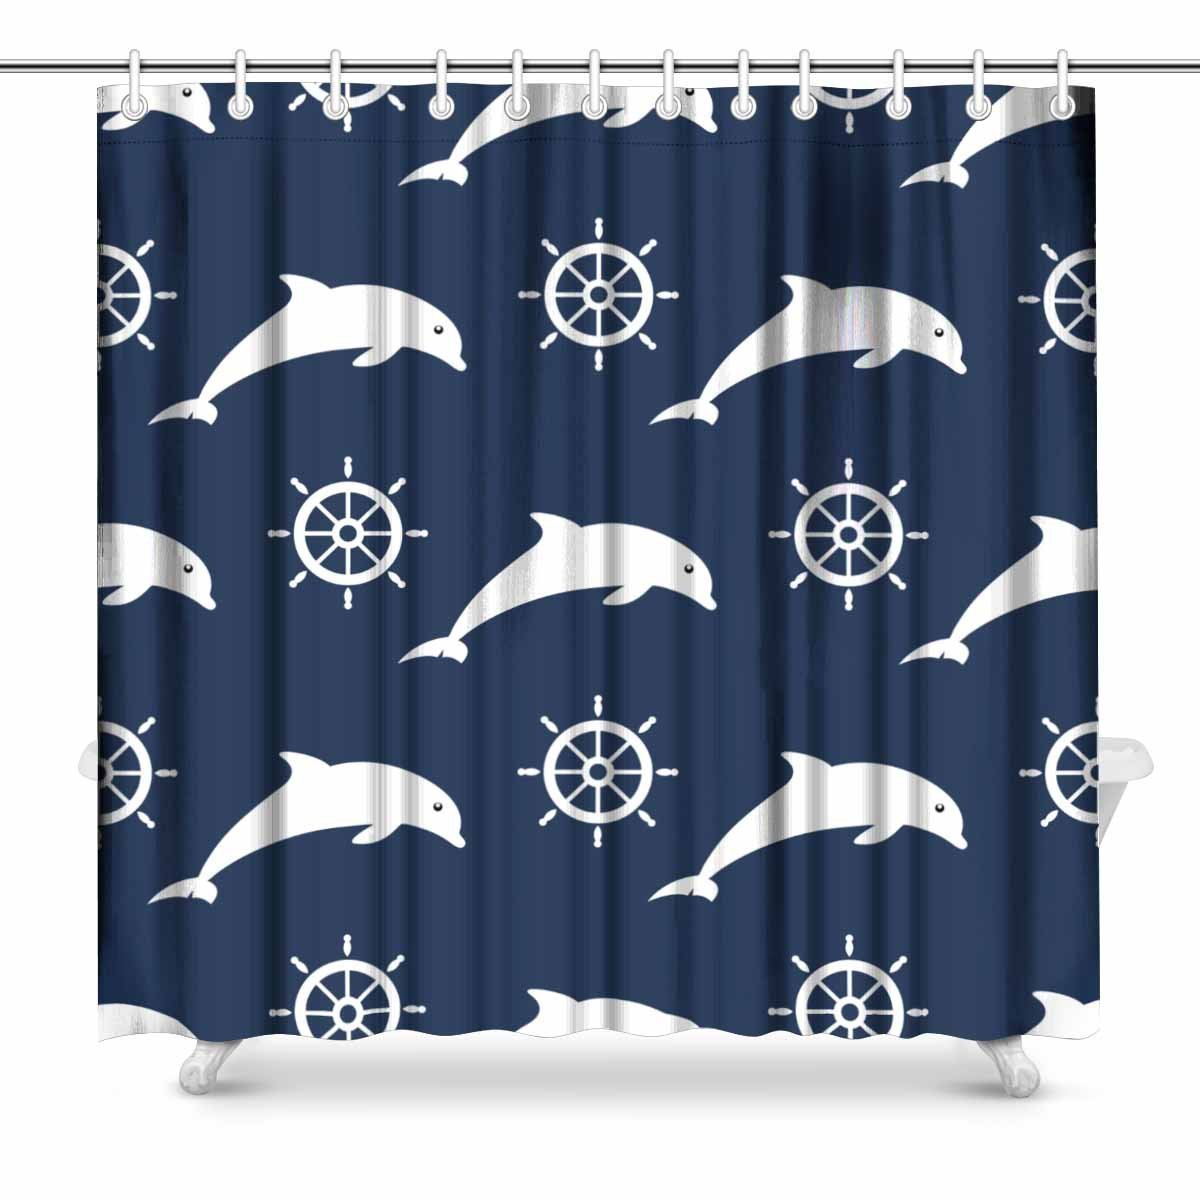 Us 16 99 Aplysia Maritime Mood Nautical Silhouettes Of Dolphins And Steering Wheels Bathroom Accessories Shower Curtain With Hooks In Shower